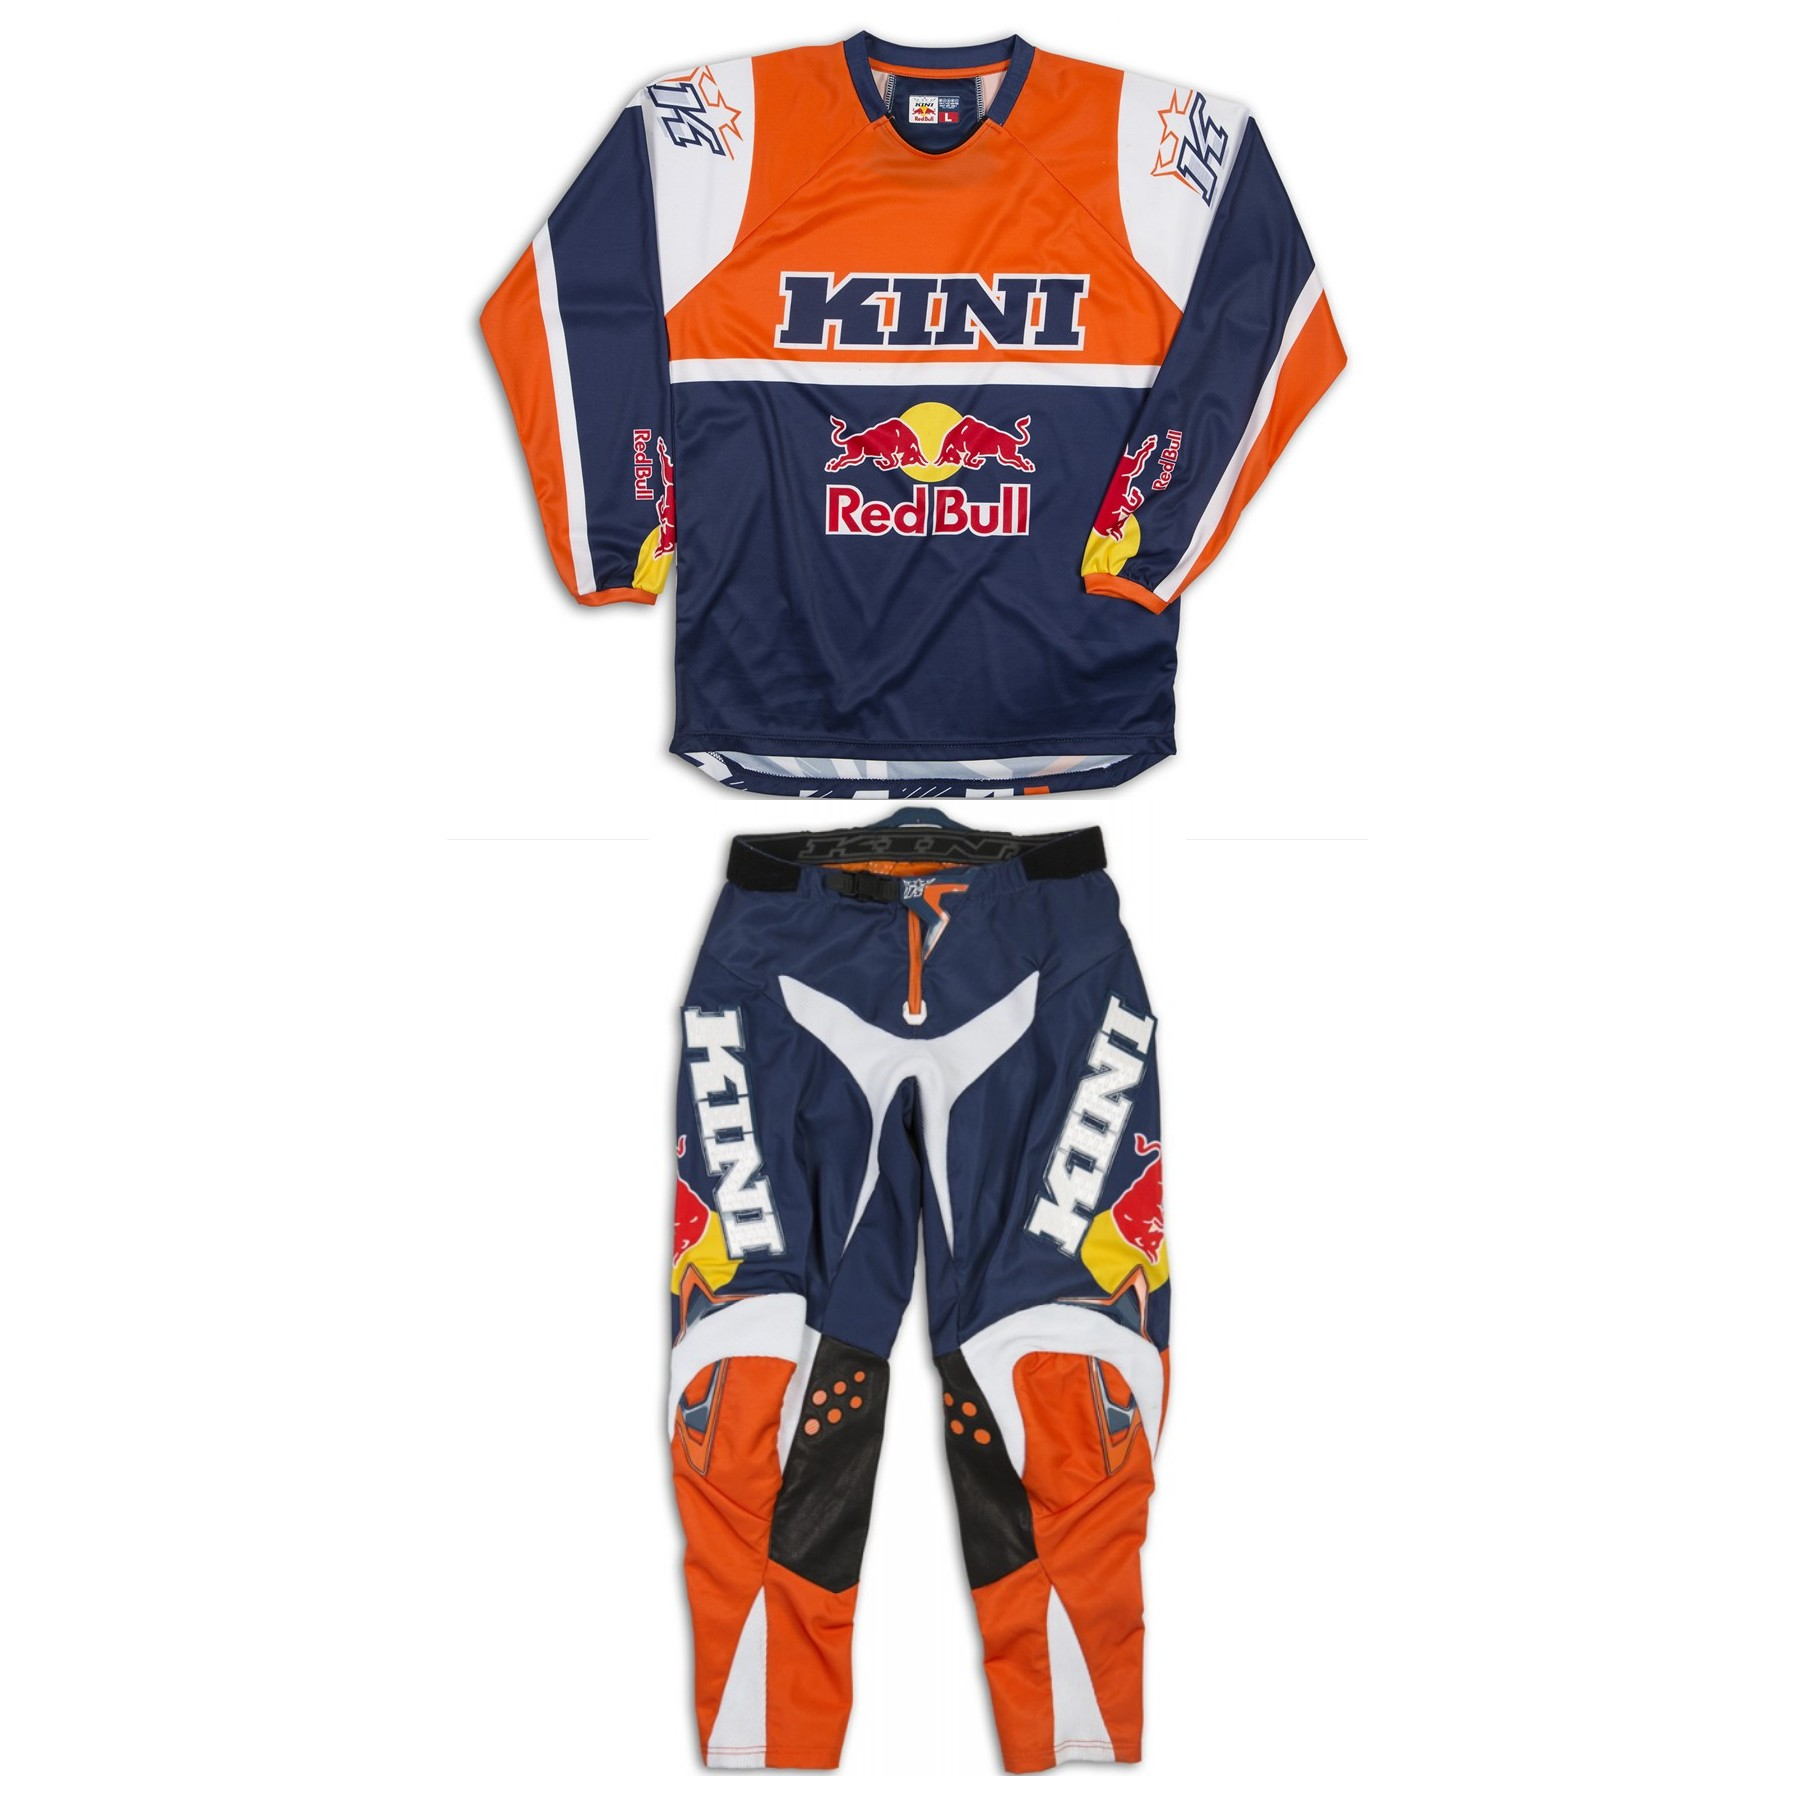 TENUE PANTALON MAILLOT KINI REDBULL REVOLUTION ORANGE T34 XL